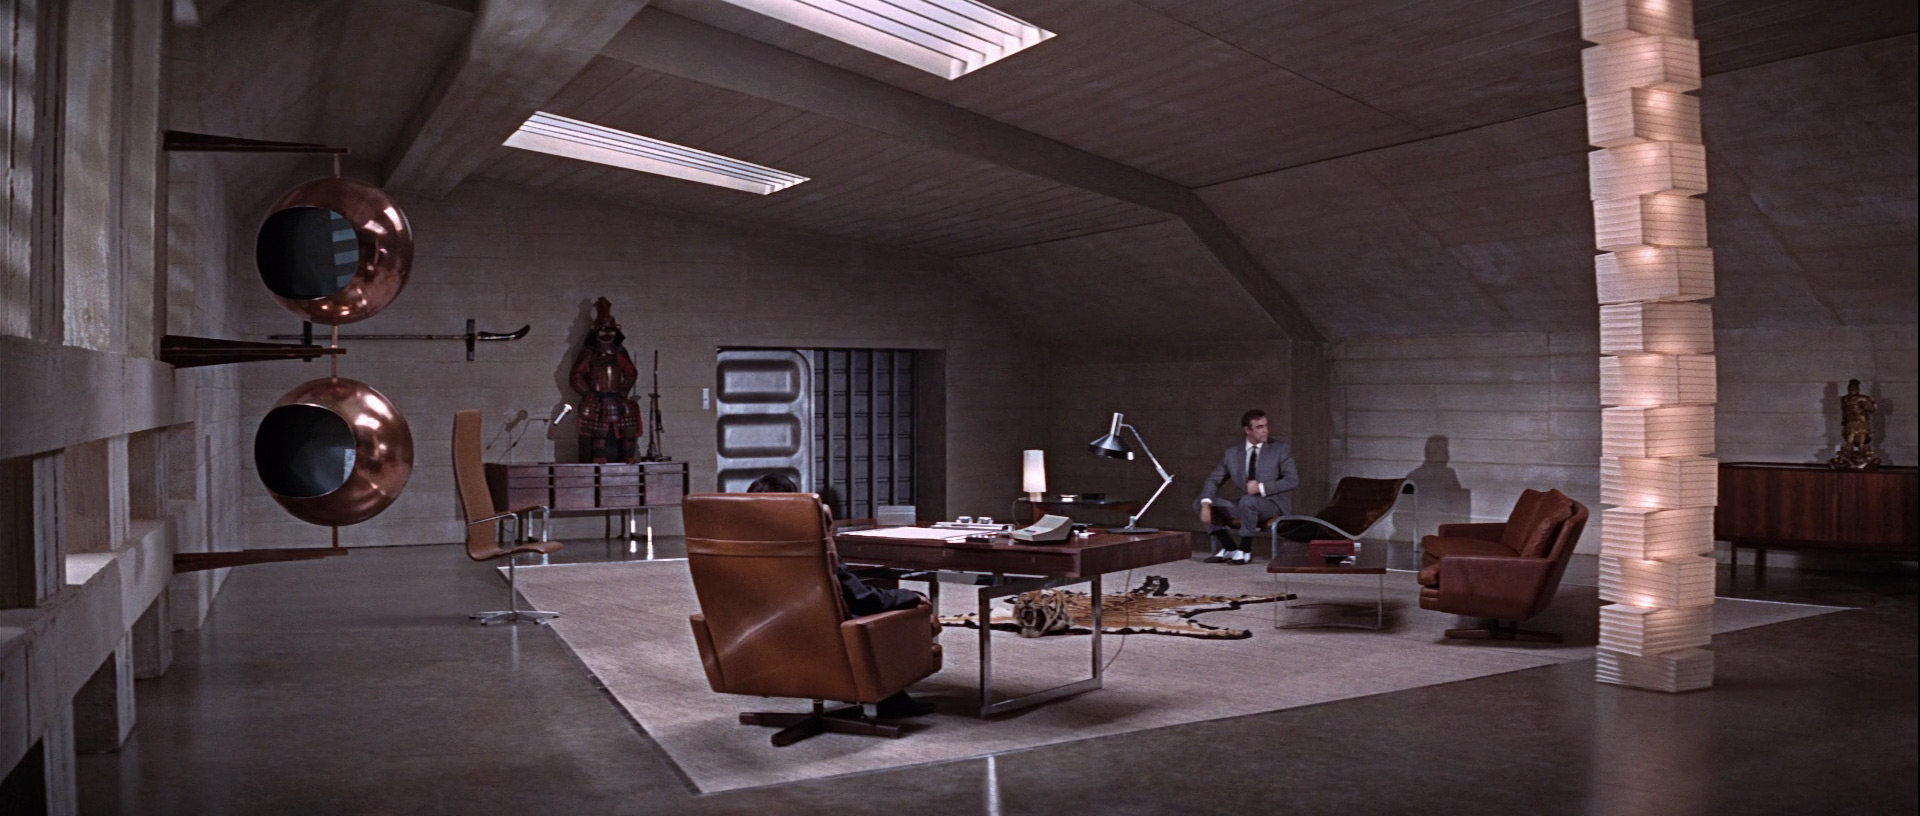 bond your only live twice office set design